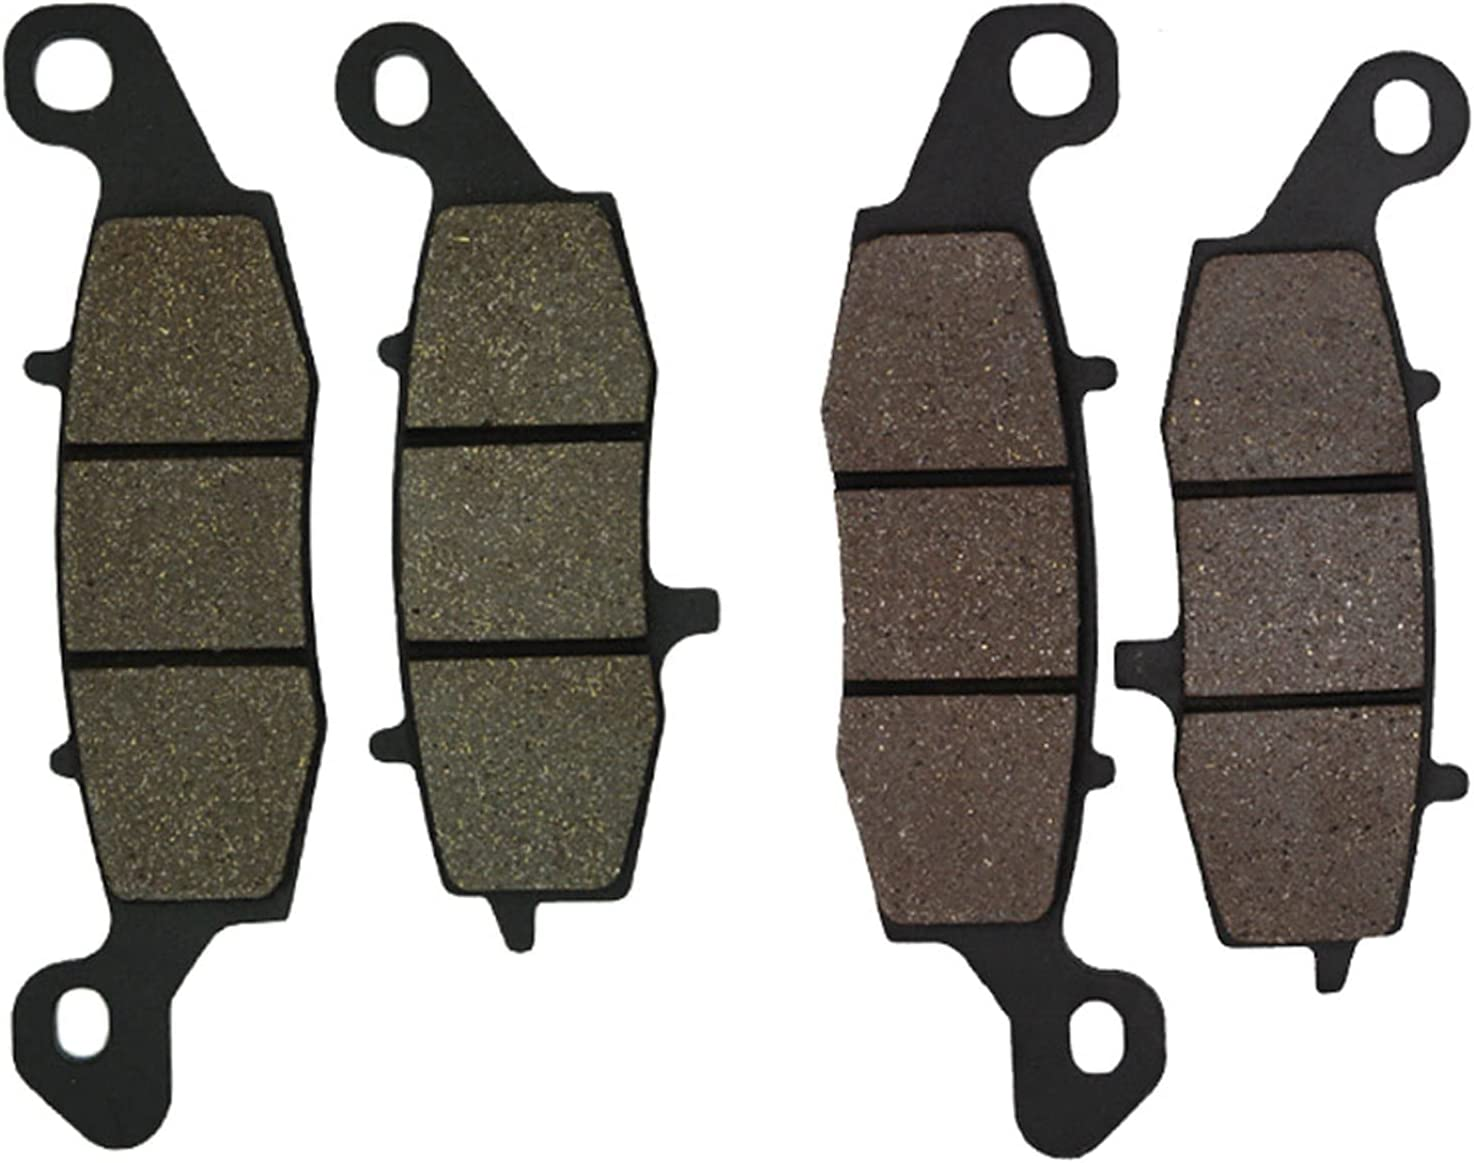 ZFSM Brake Pads for K-awasaki KLE650 sale Max 49% OFF ABS KLE 200 650 2007 Versys